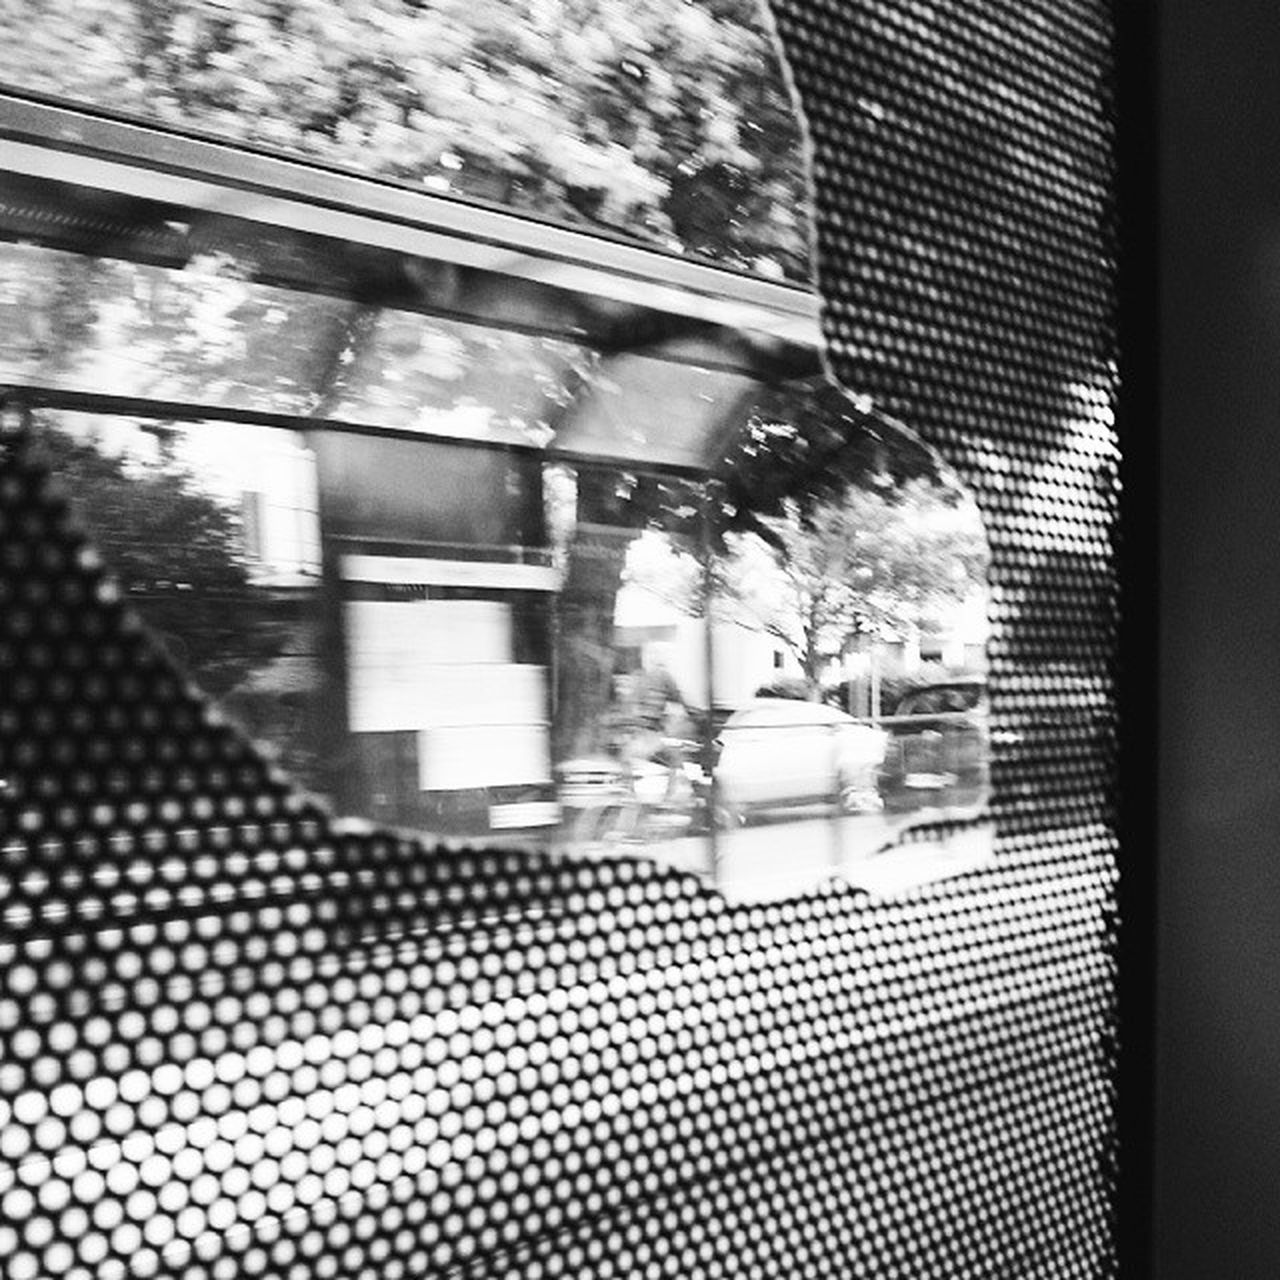 train - vehicle, window, day, indoors, no people, close-up